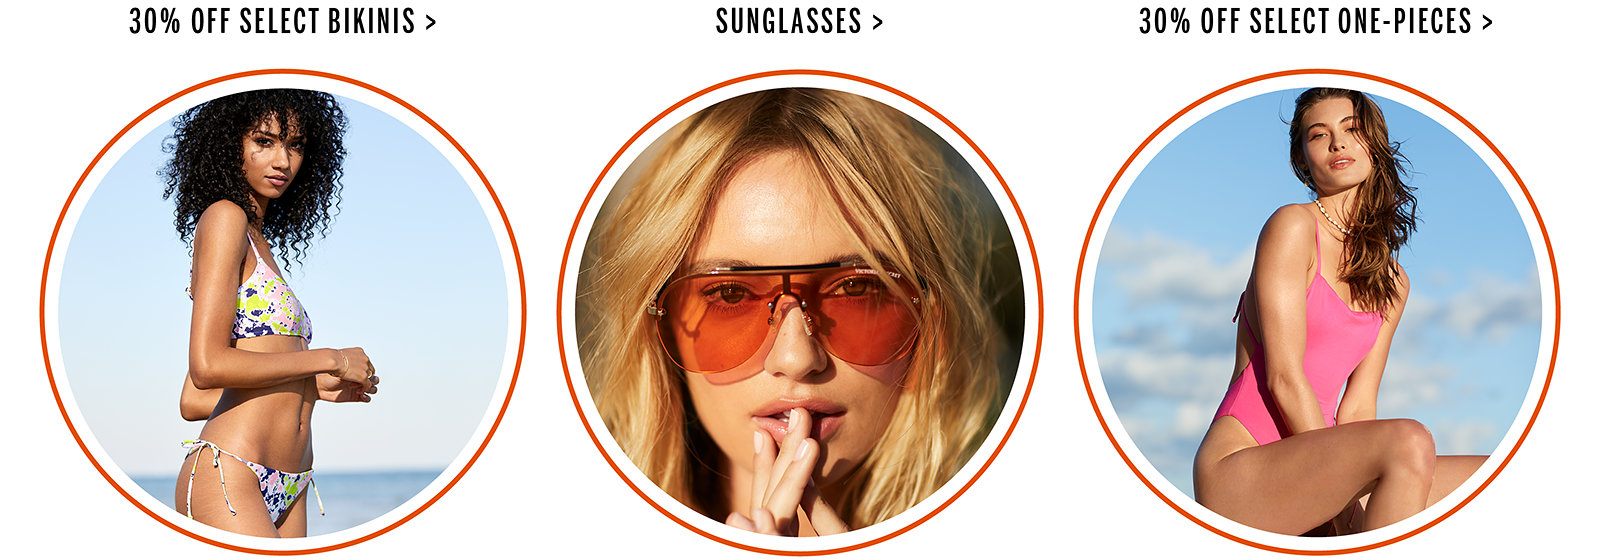 5af4880a5b3 30% Off Select BikinisSunglasses30% Off Select One-Pieces